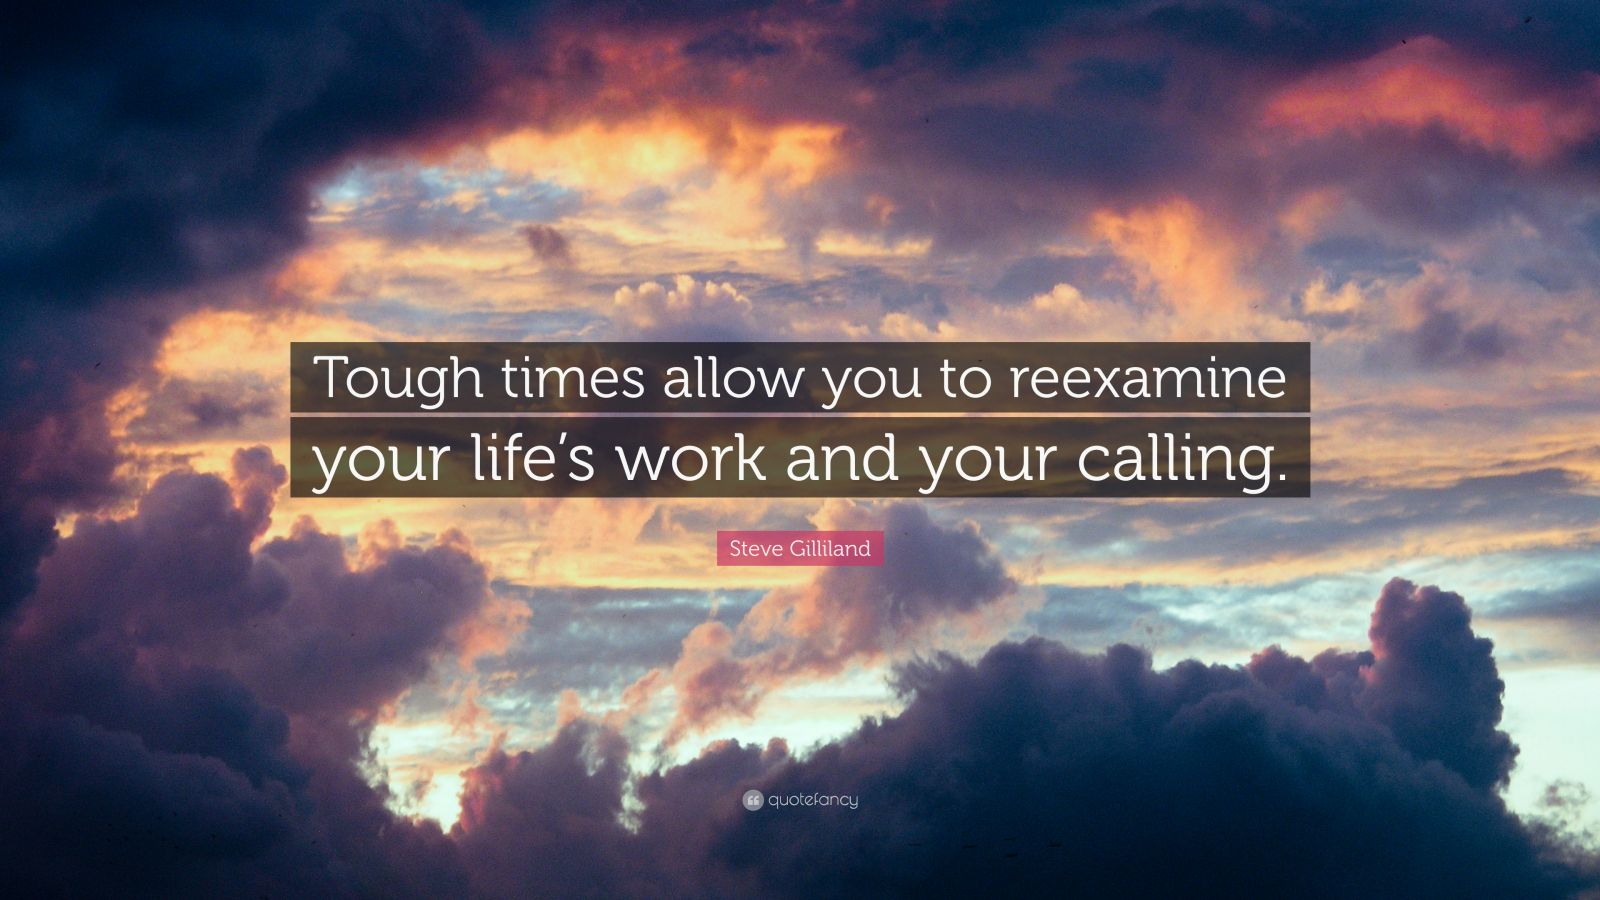 """Steve Gilliland Quote: """"Tough times allow you to reexamine your life's work and your calling."""""""